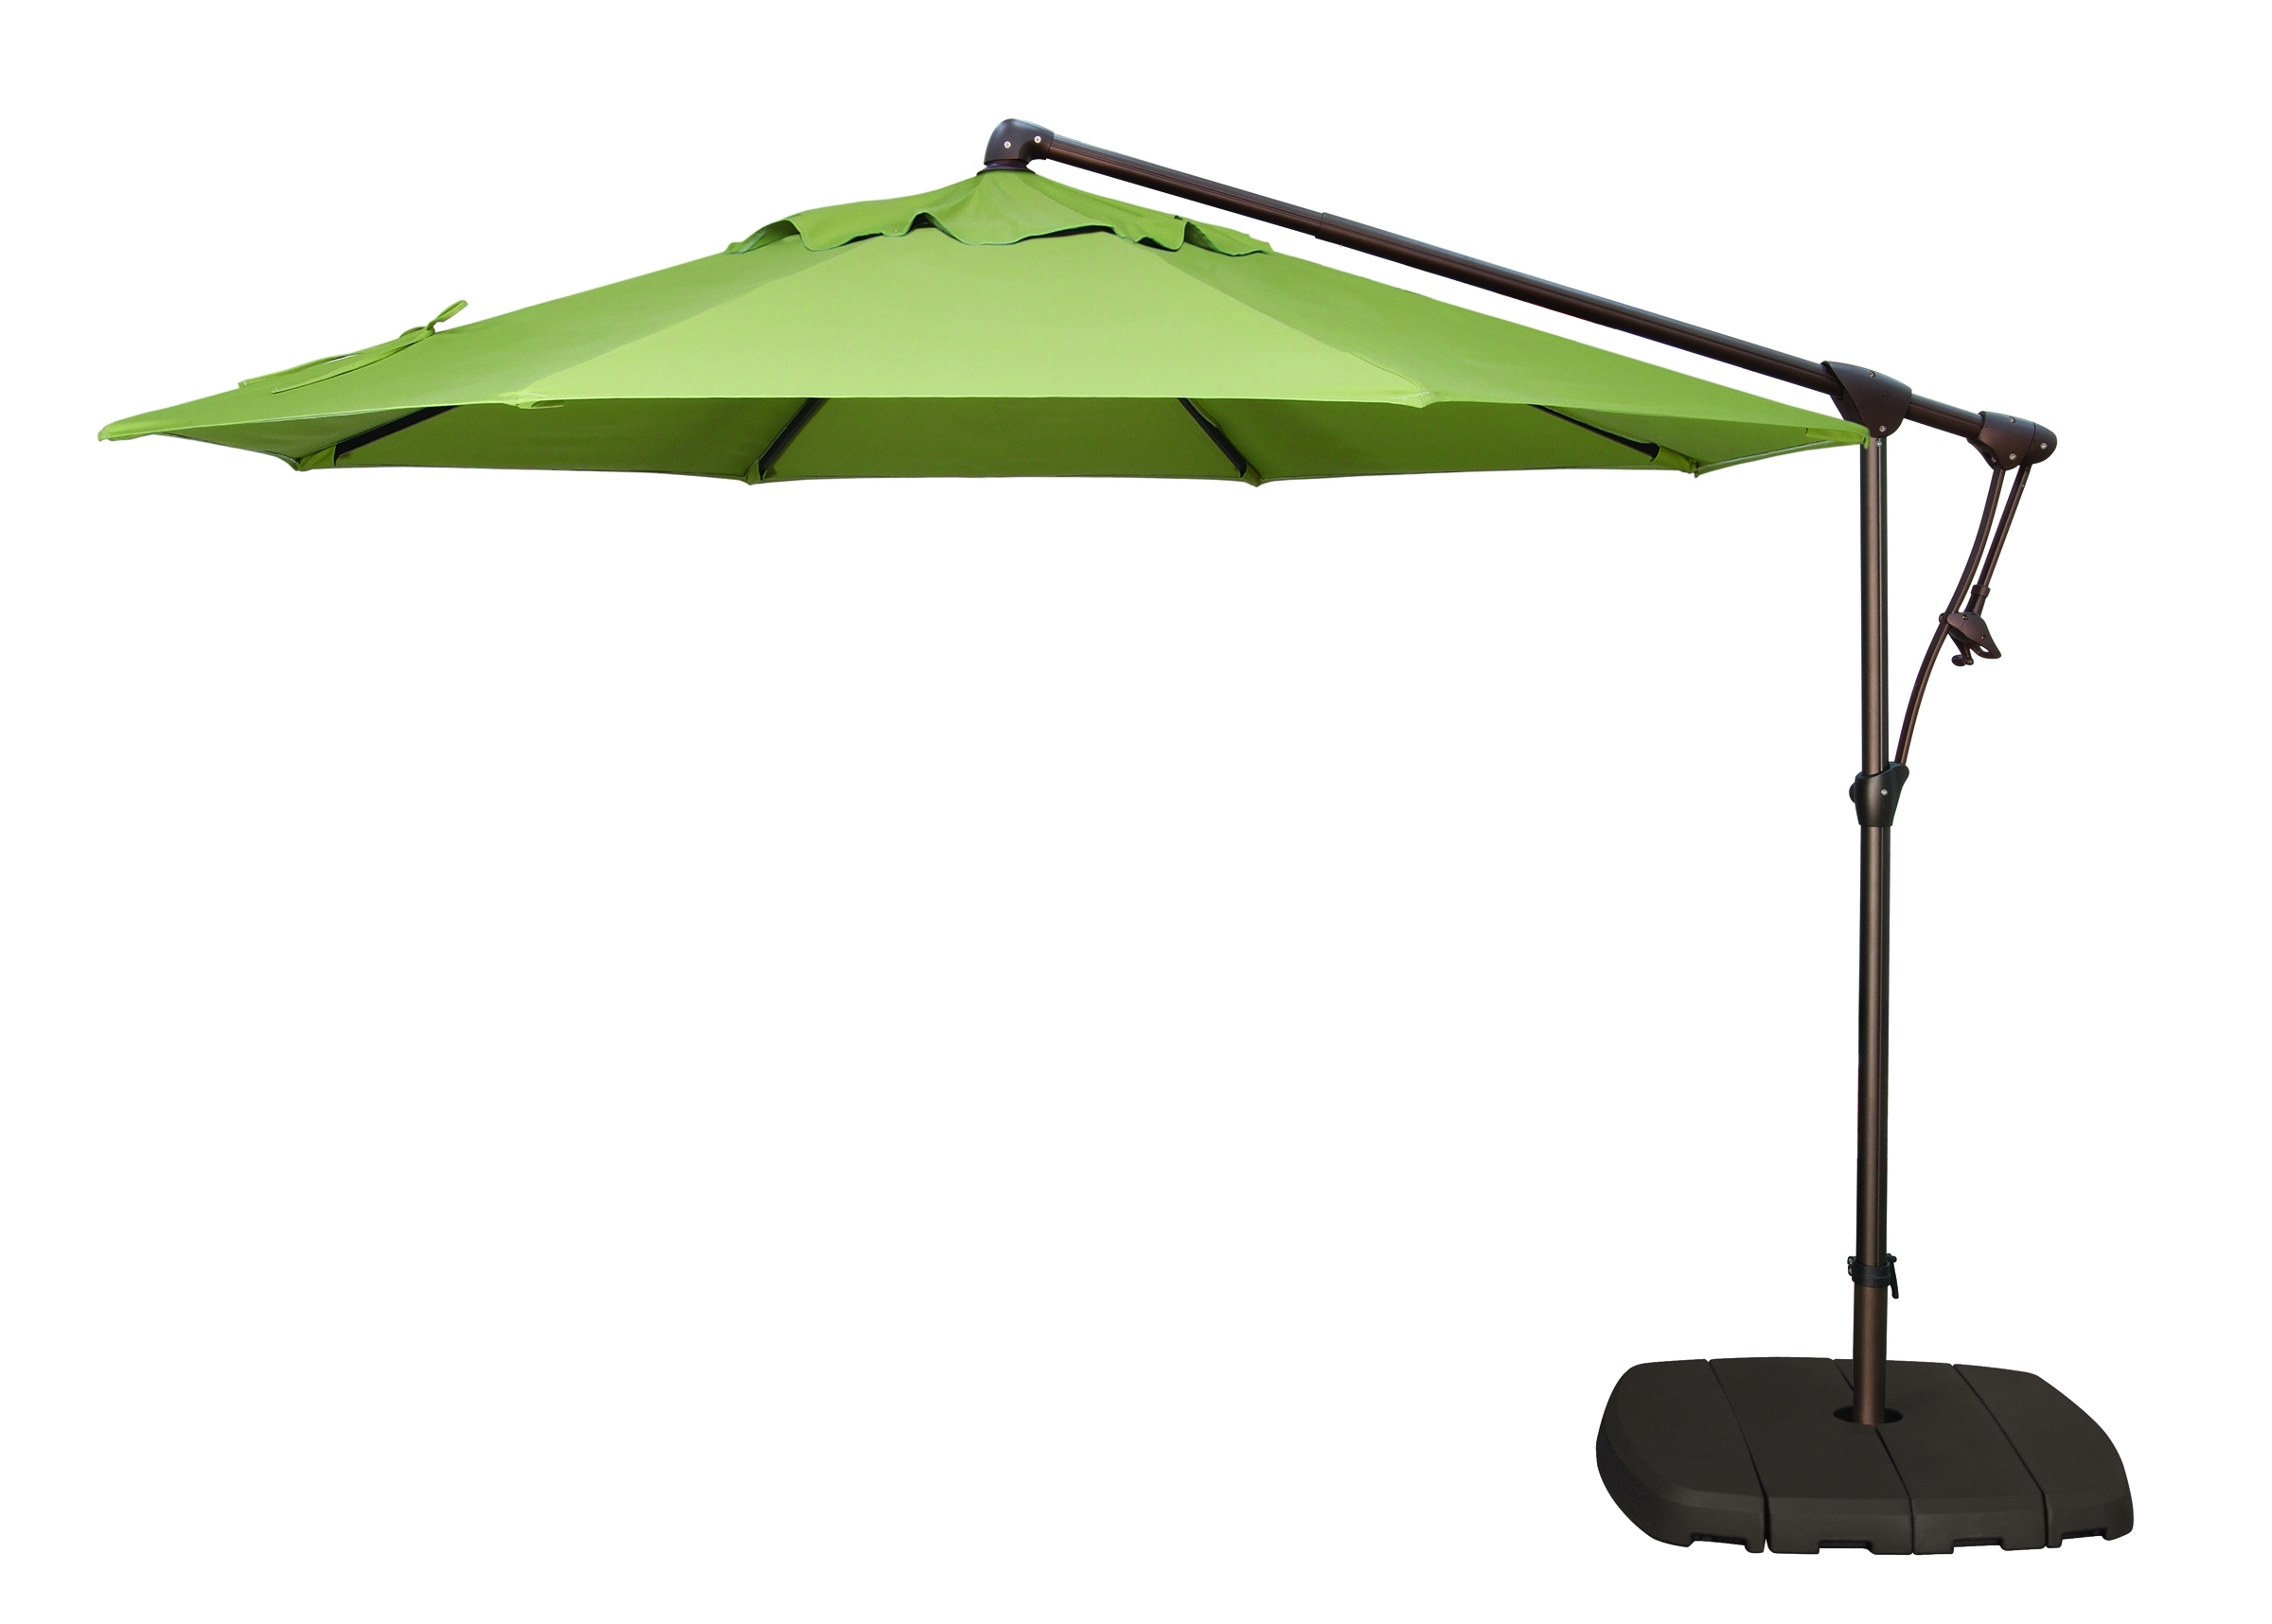 Sunbrella Patio Umbrellas At Walmart Intended For Best And Newest Patio Umbrellas Walmart – Home Design Ideas (View 15 of 20)